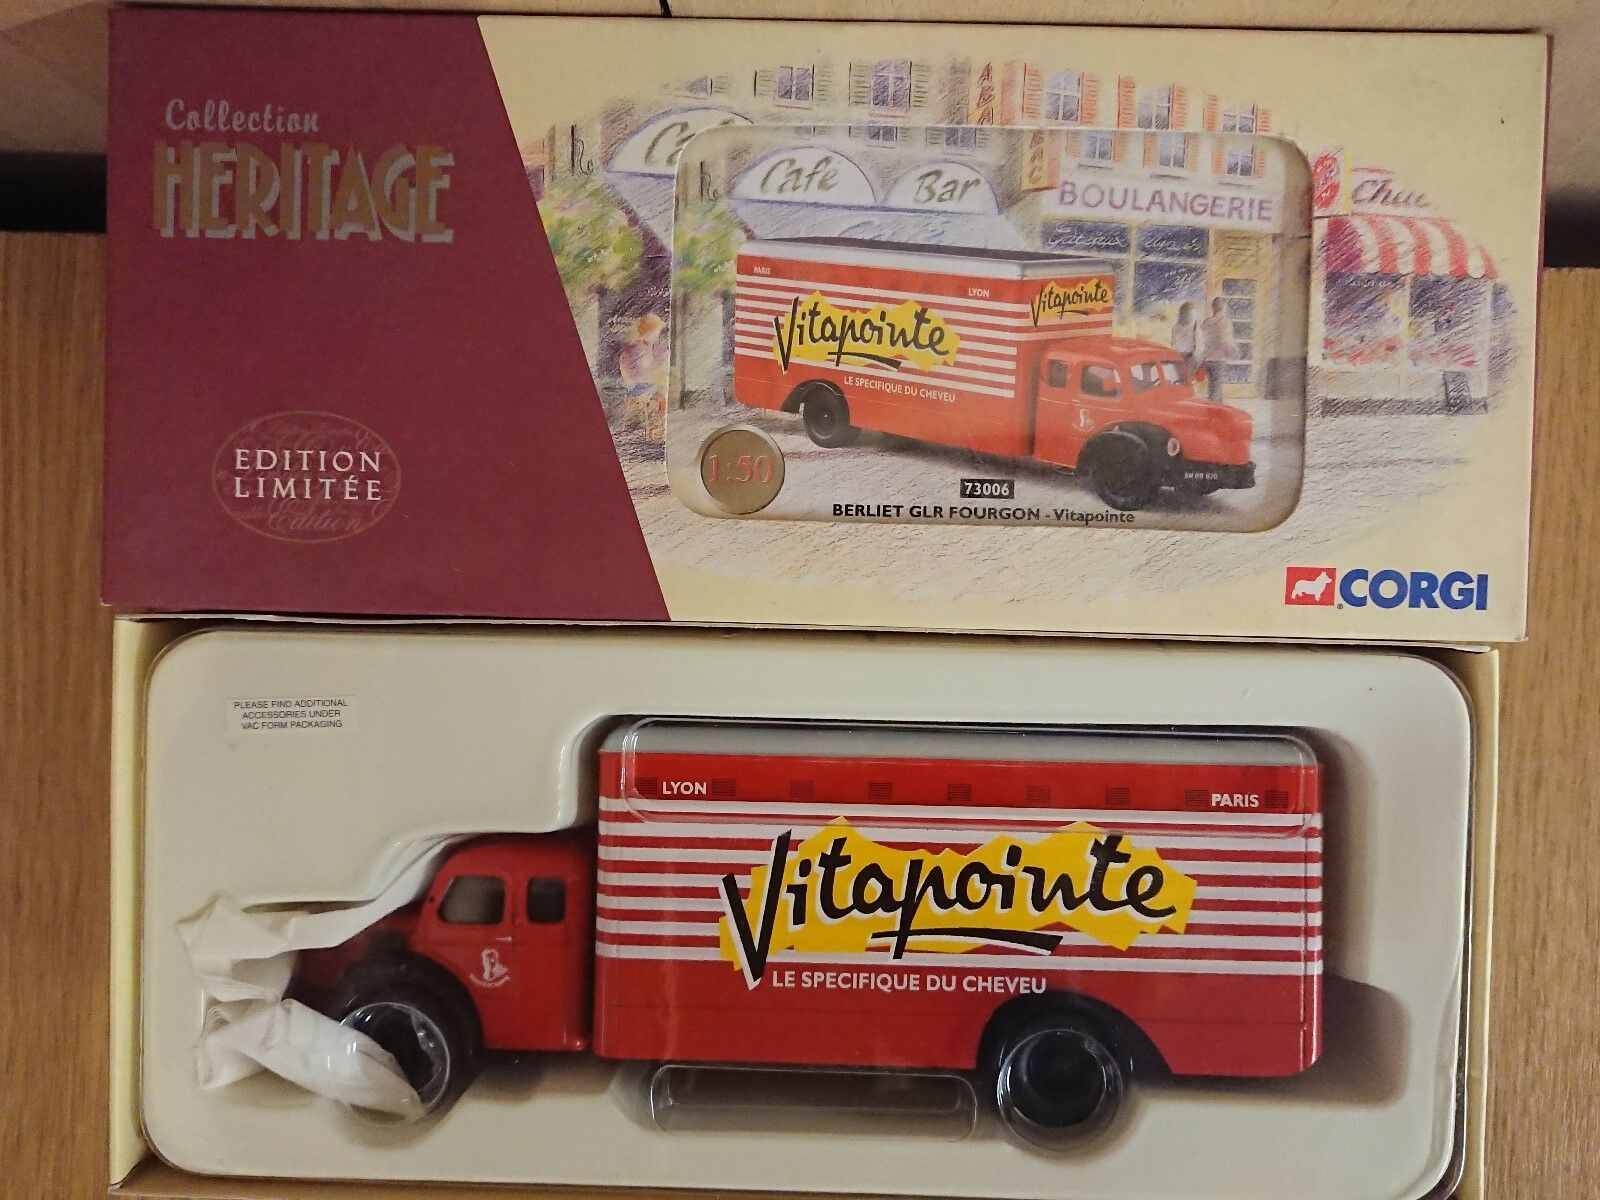 Corgi 73006 Berliet GLR Fourgon VITAPOINTE Ltd Edition No. 0307 of ONLY 1048